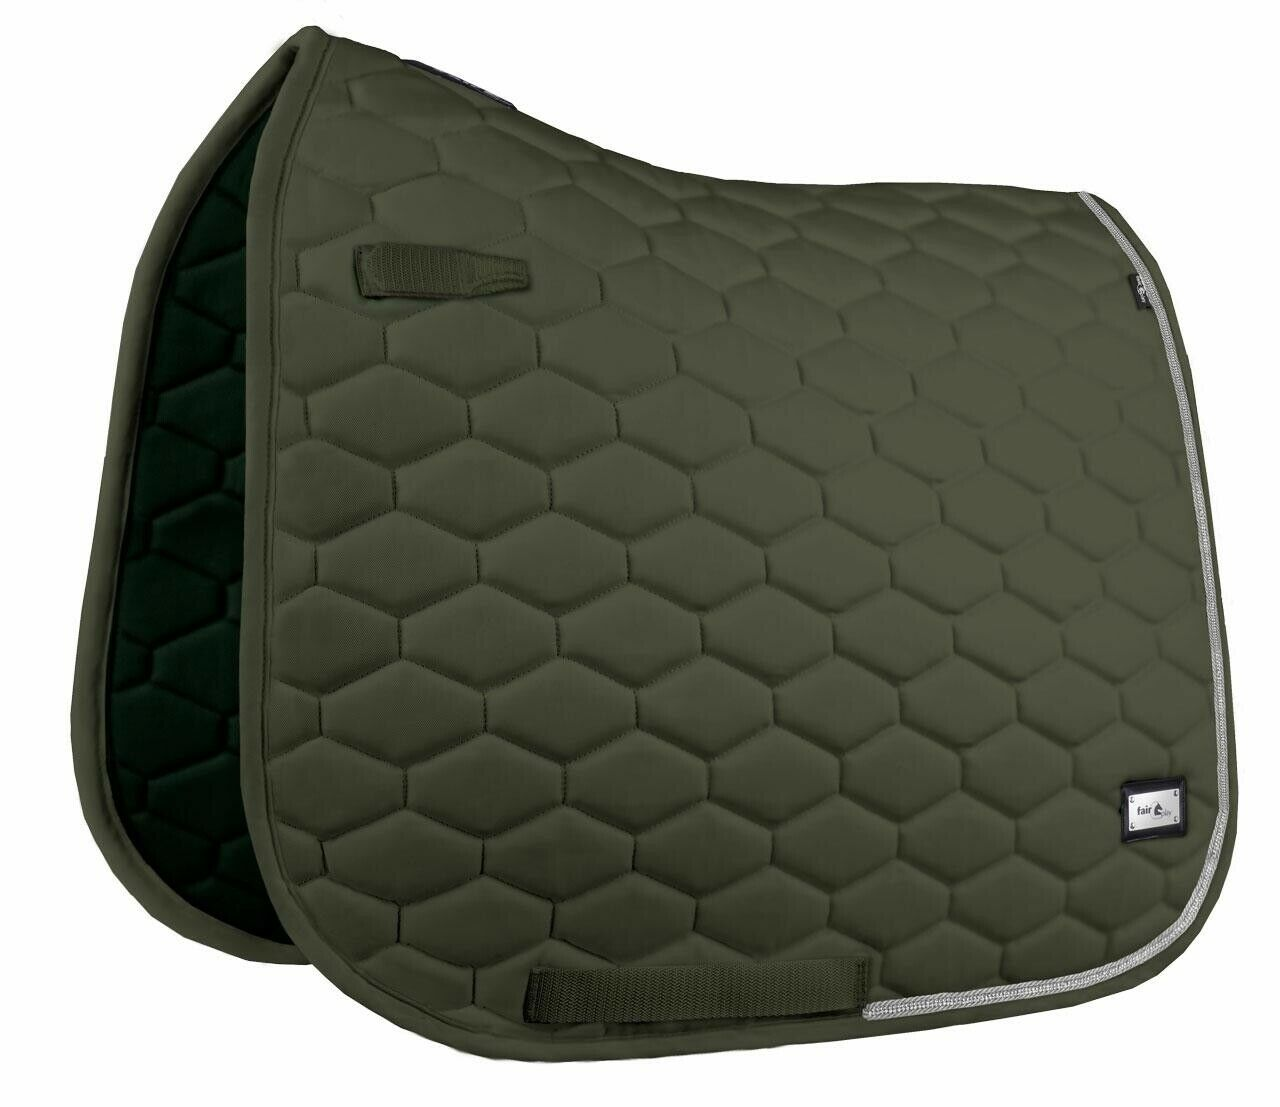 Fair Play Saddle Pad Saddle Pad Hexagon Crystal Dre or vs Trend Colour Olive